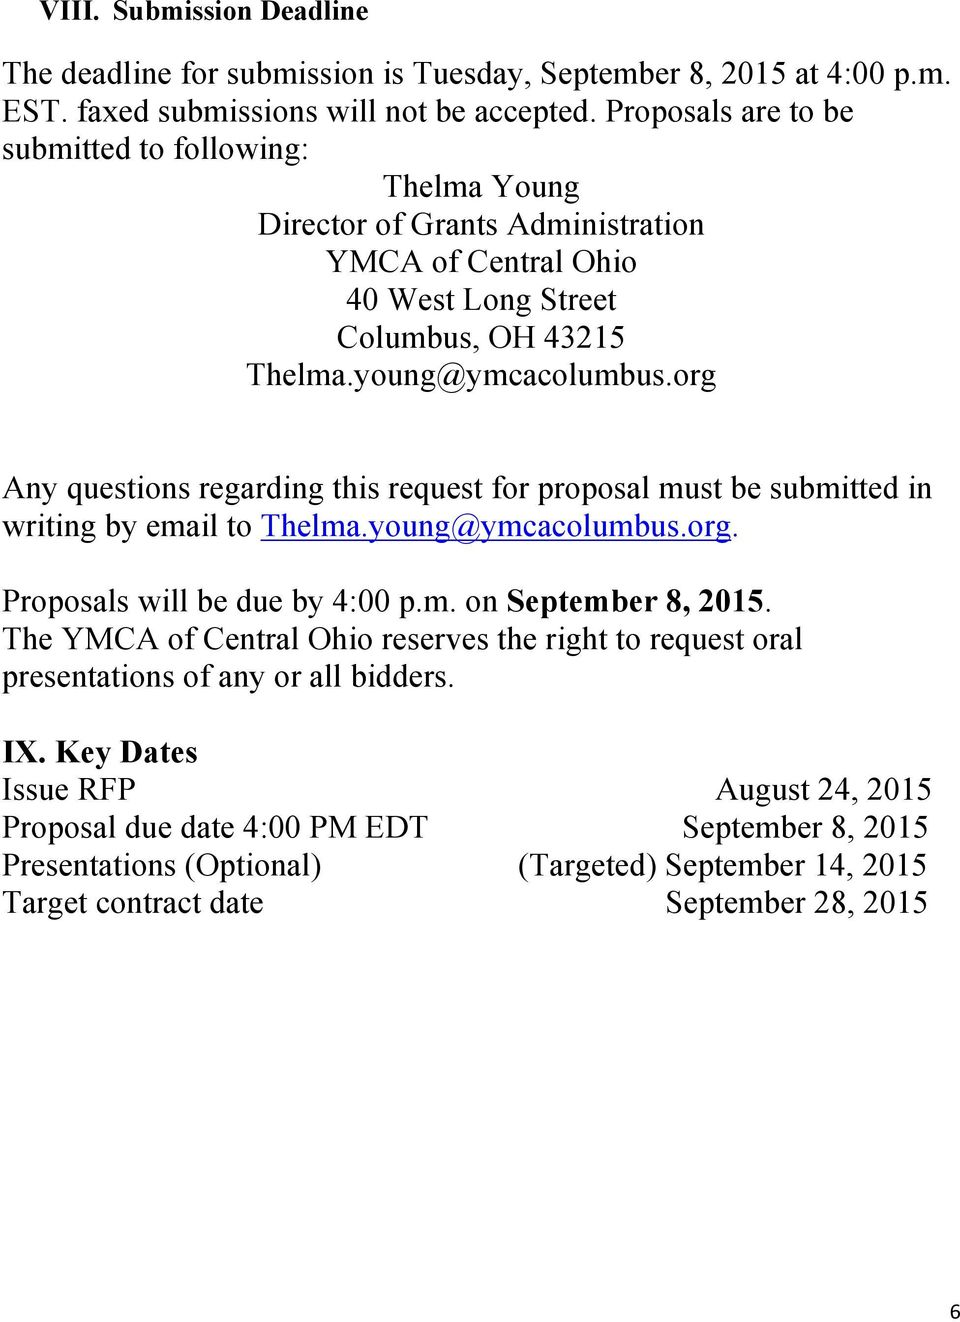 org Any questions regarding this request for proposal must be submitted in writing by email to Thelma.young@ymcacolumbus.org. Proposals will be due by 4:00 p.m. on September 8, 2015.